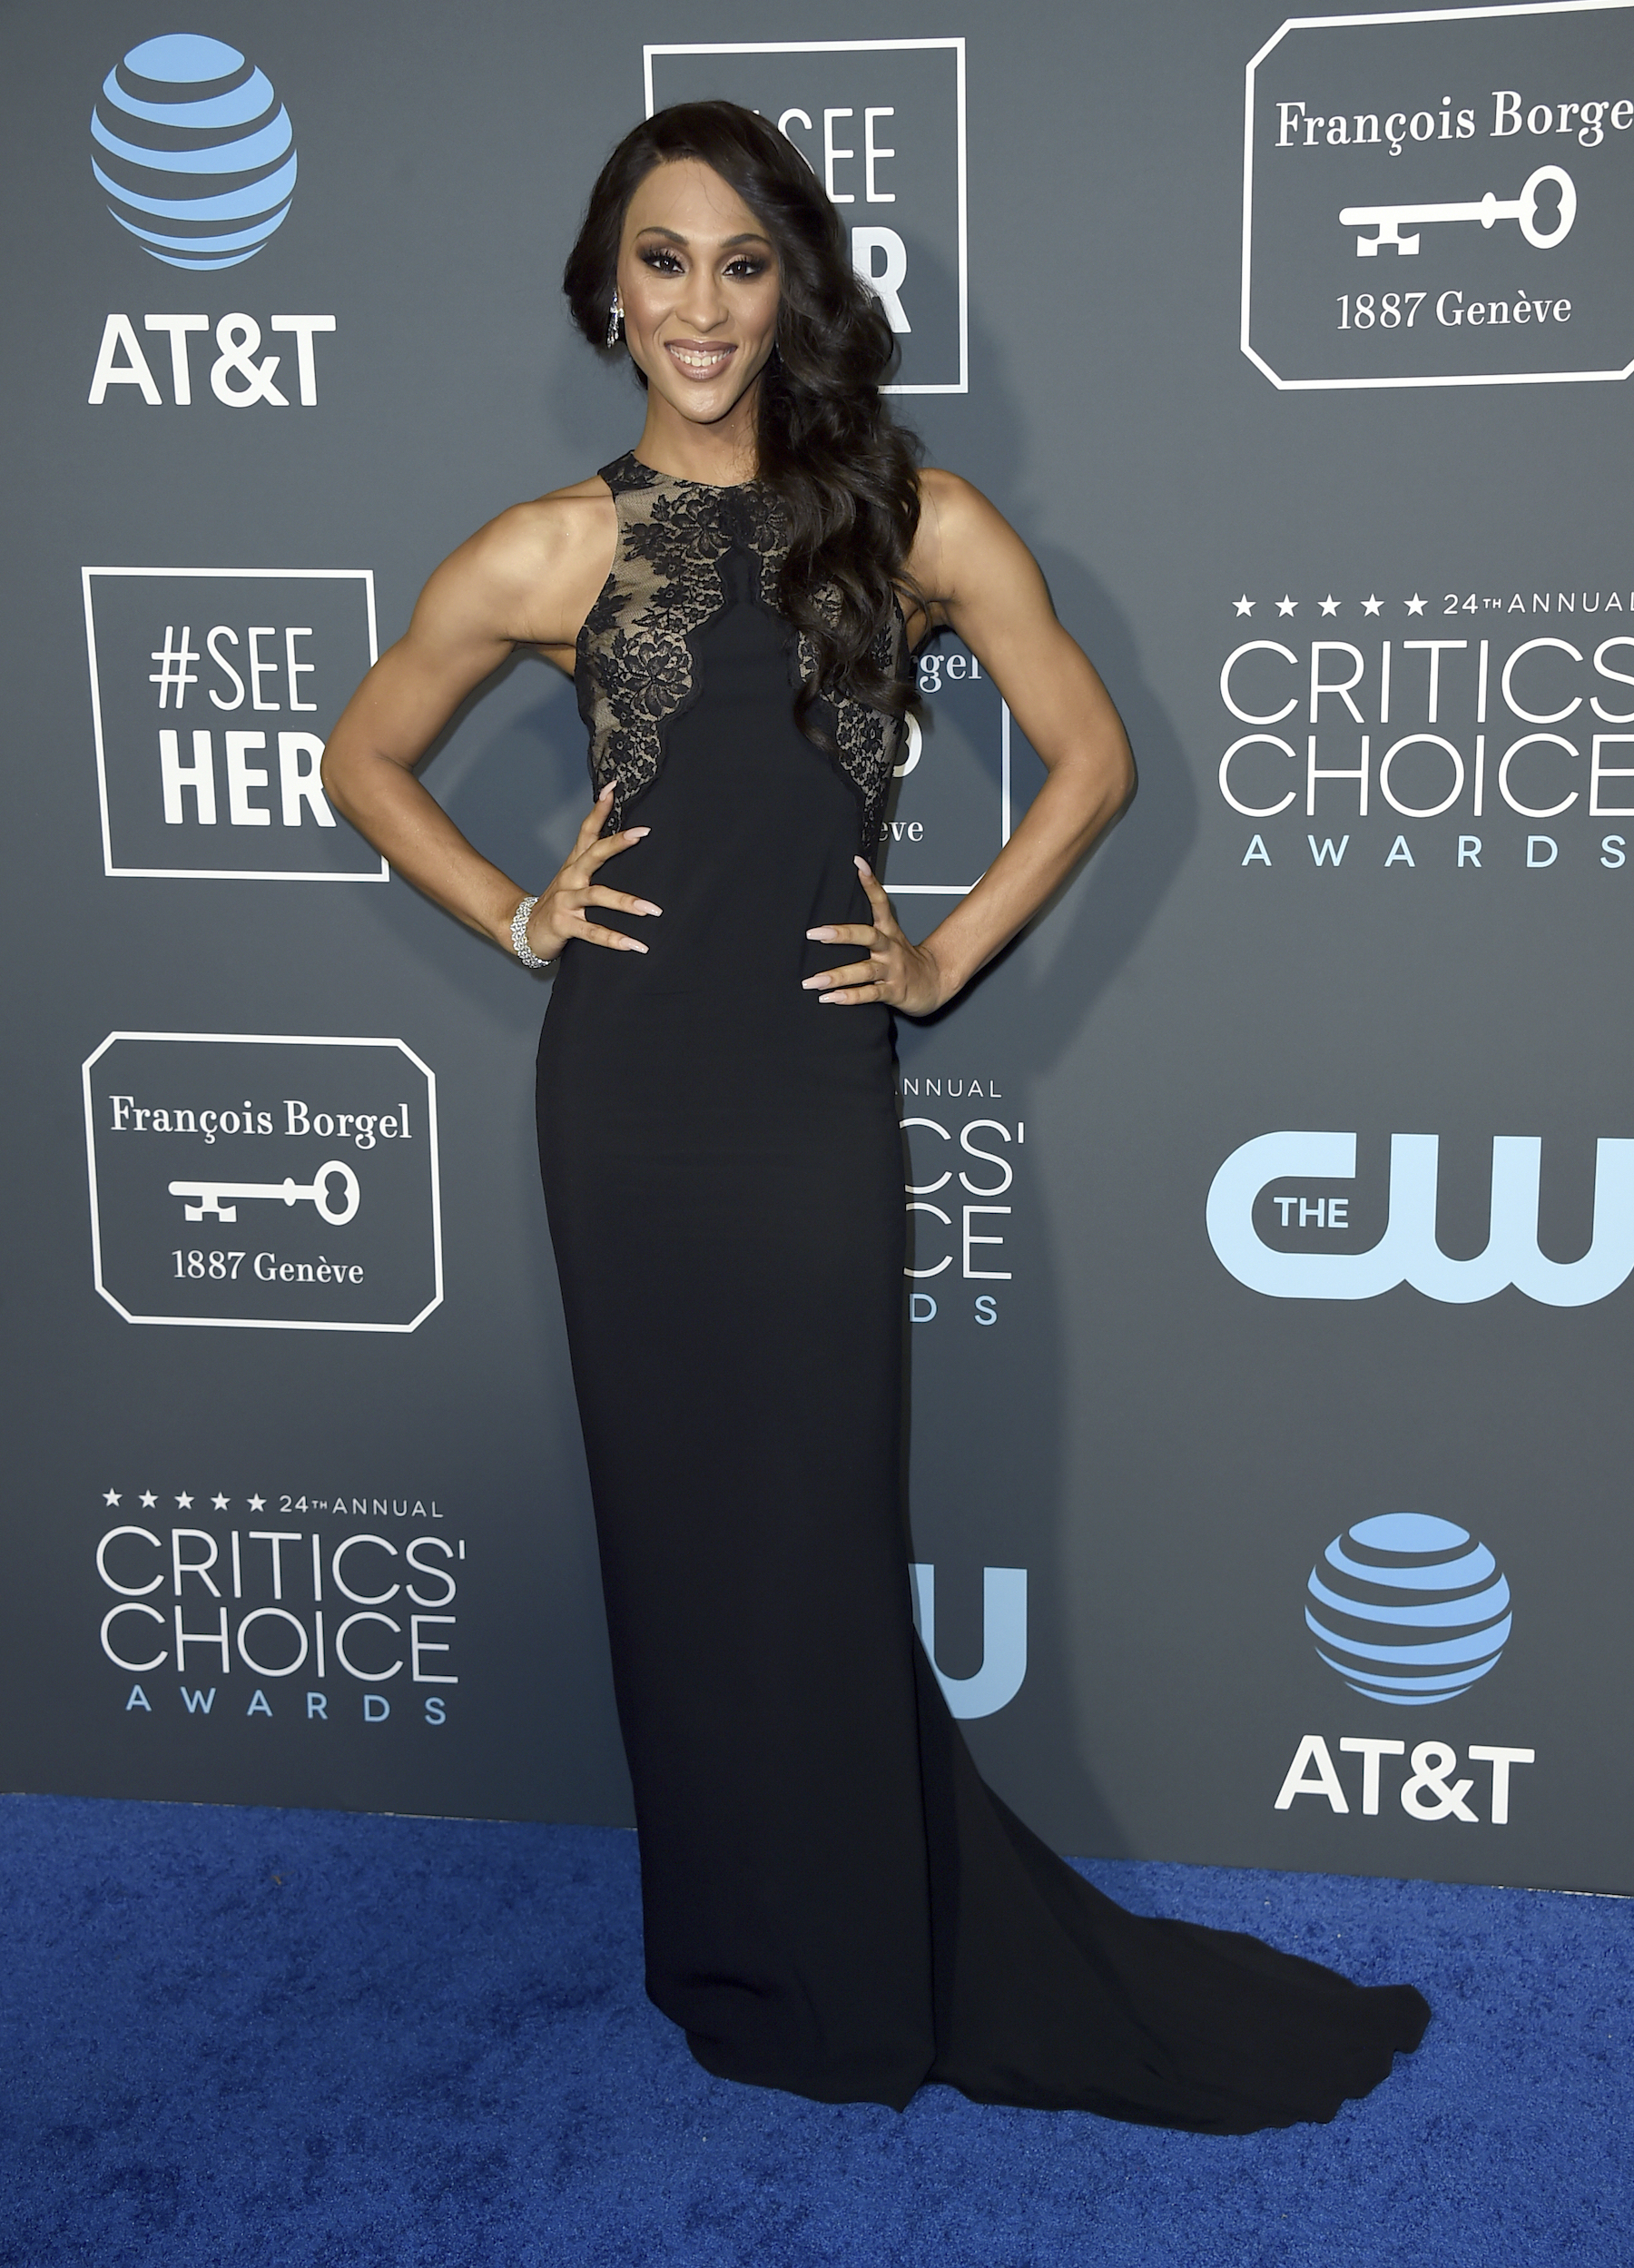 <div class='meta'><div class='origin-logo' data-origin='AP'></div><span class='caption-text' data-credit='Jordan Strauss/Invision/AP'>Mj Rodriguez arrives at the 24th annual Critics' Choice Awards on Sunday, Jan. 13, 2019, at the Barker Hangar in Santa Monica, Calif.</span></div>